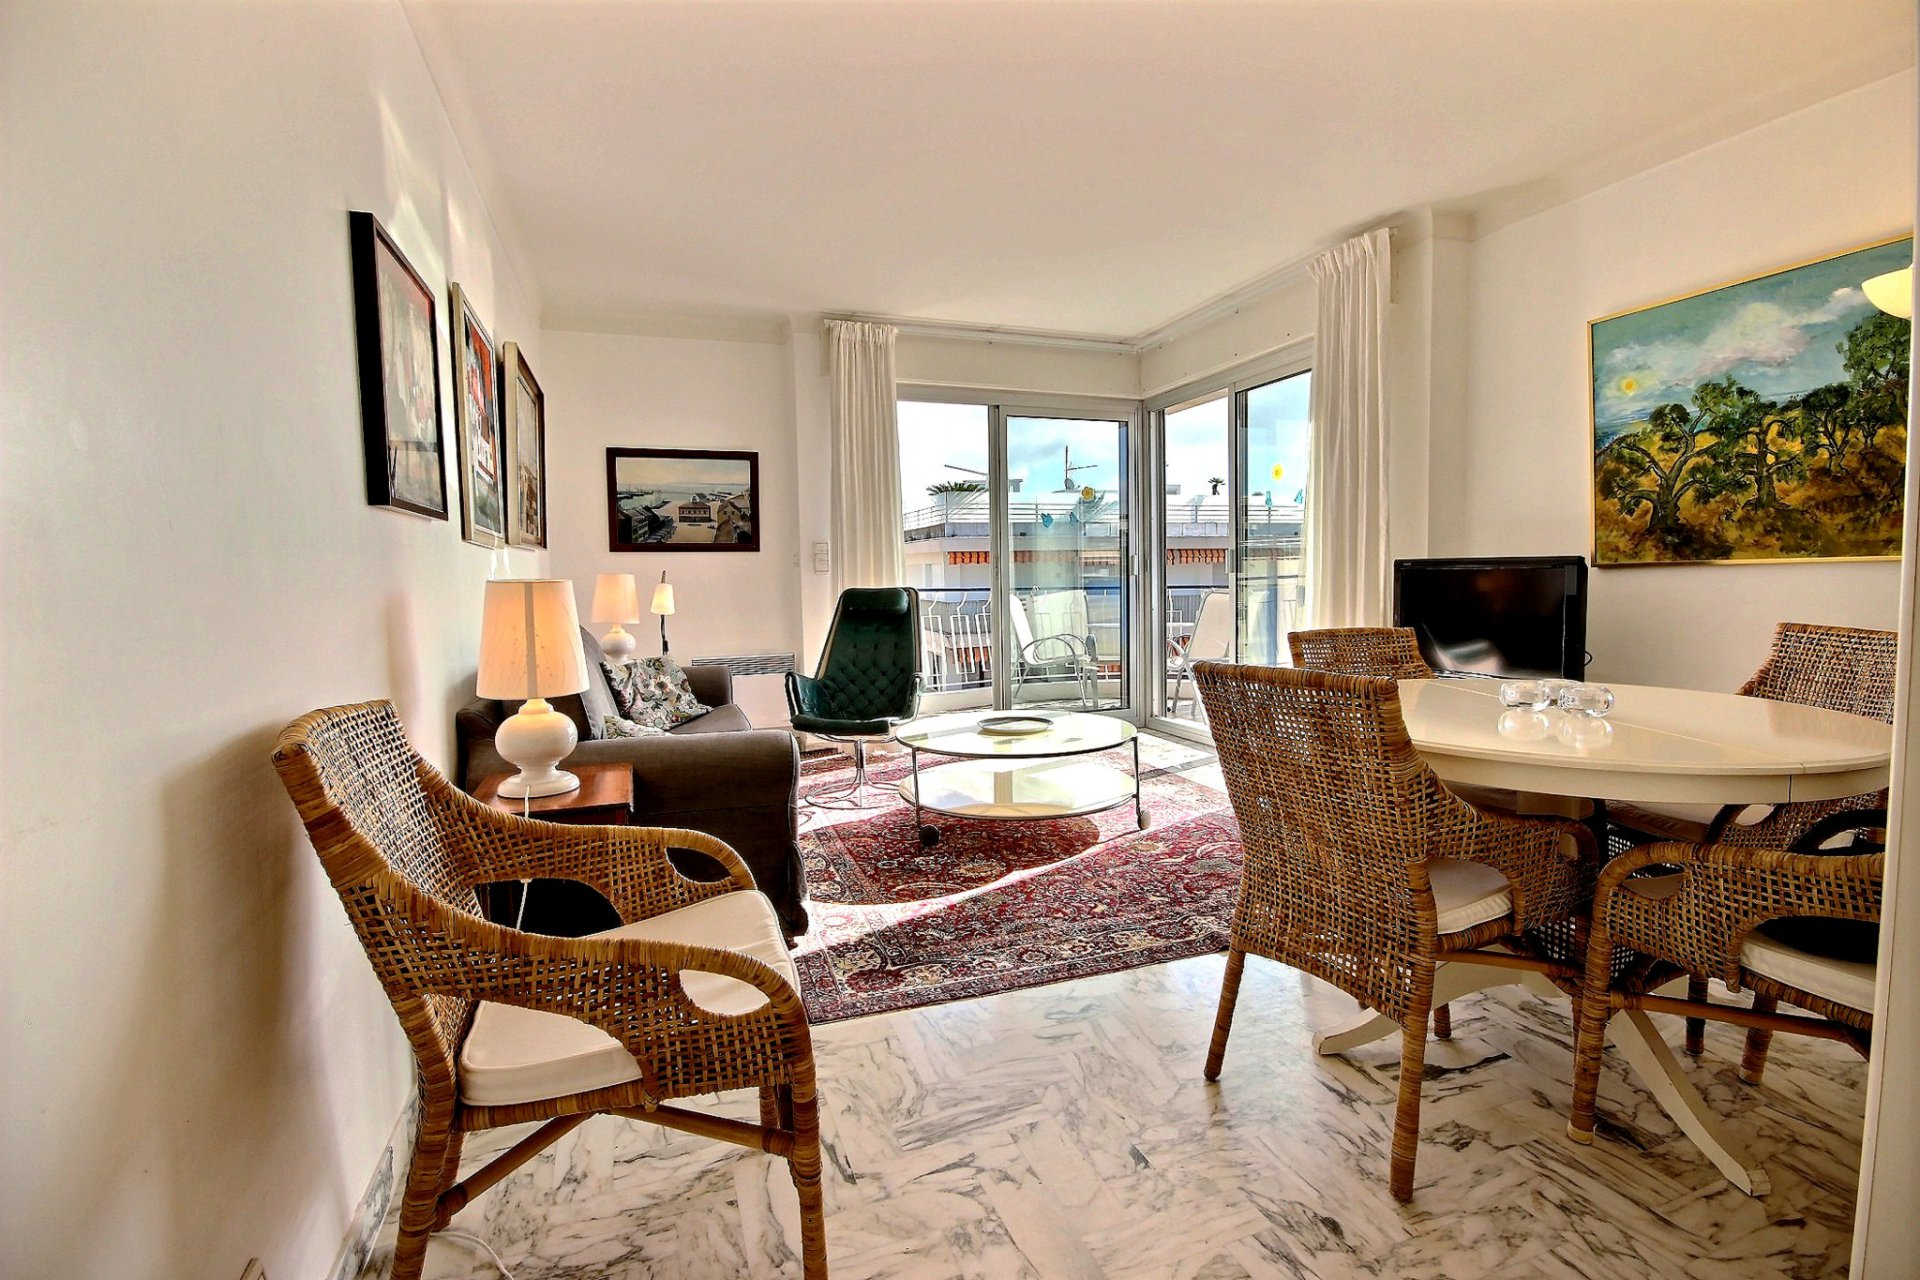 Cannes Palm Beach Port Canto last floor apartment for sale terrace living room